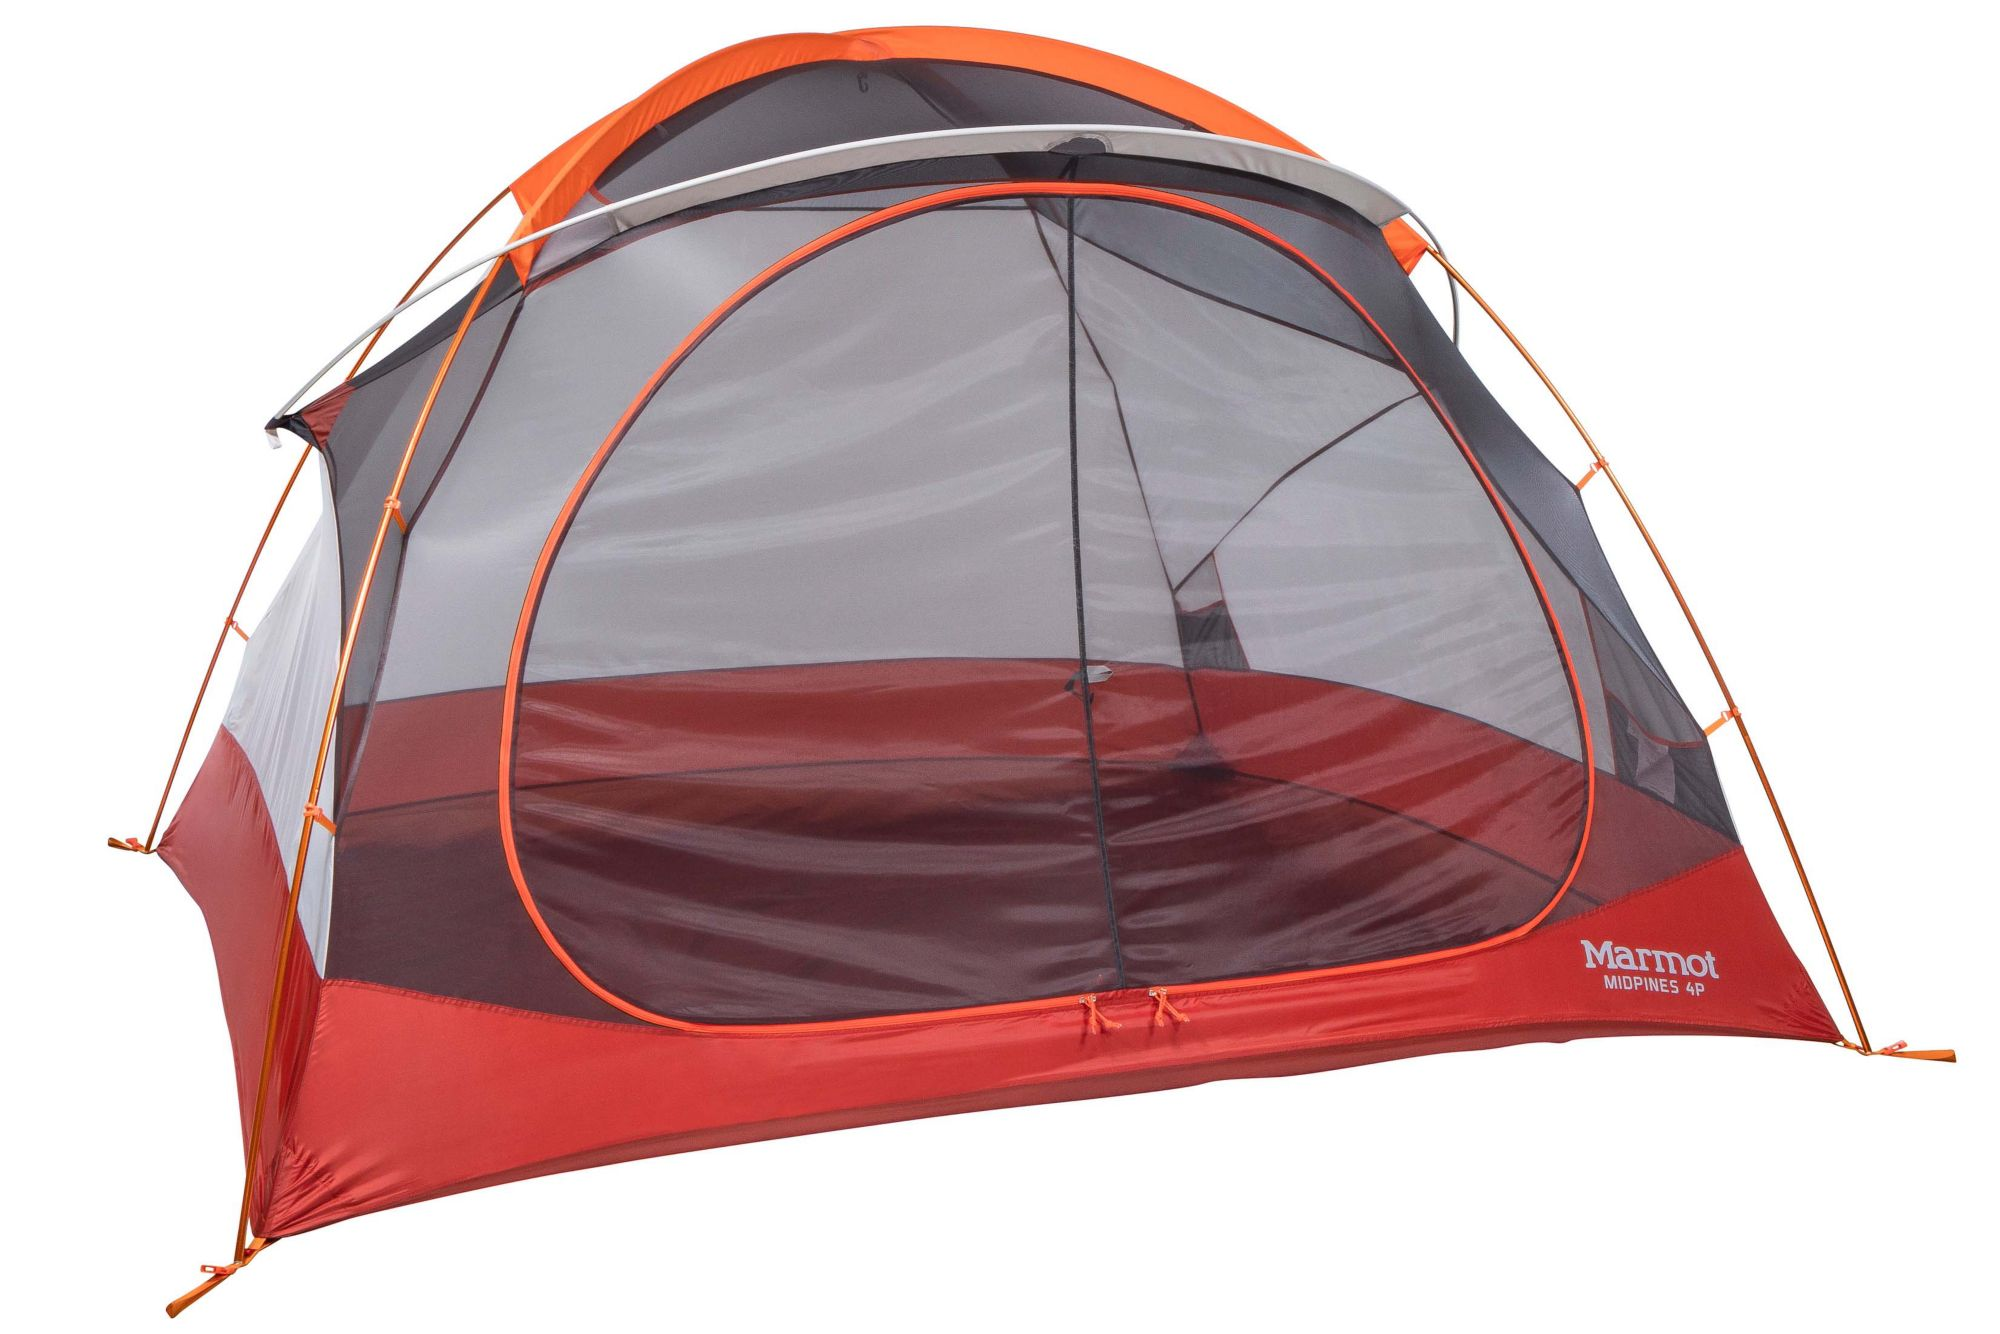 Midpines 4P Orange Spice/Arona medium  sc 1 st  Marmot & Tents / Equipment | Marmot.com